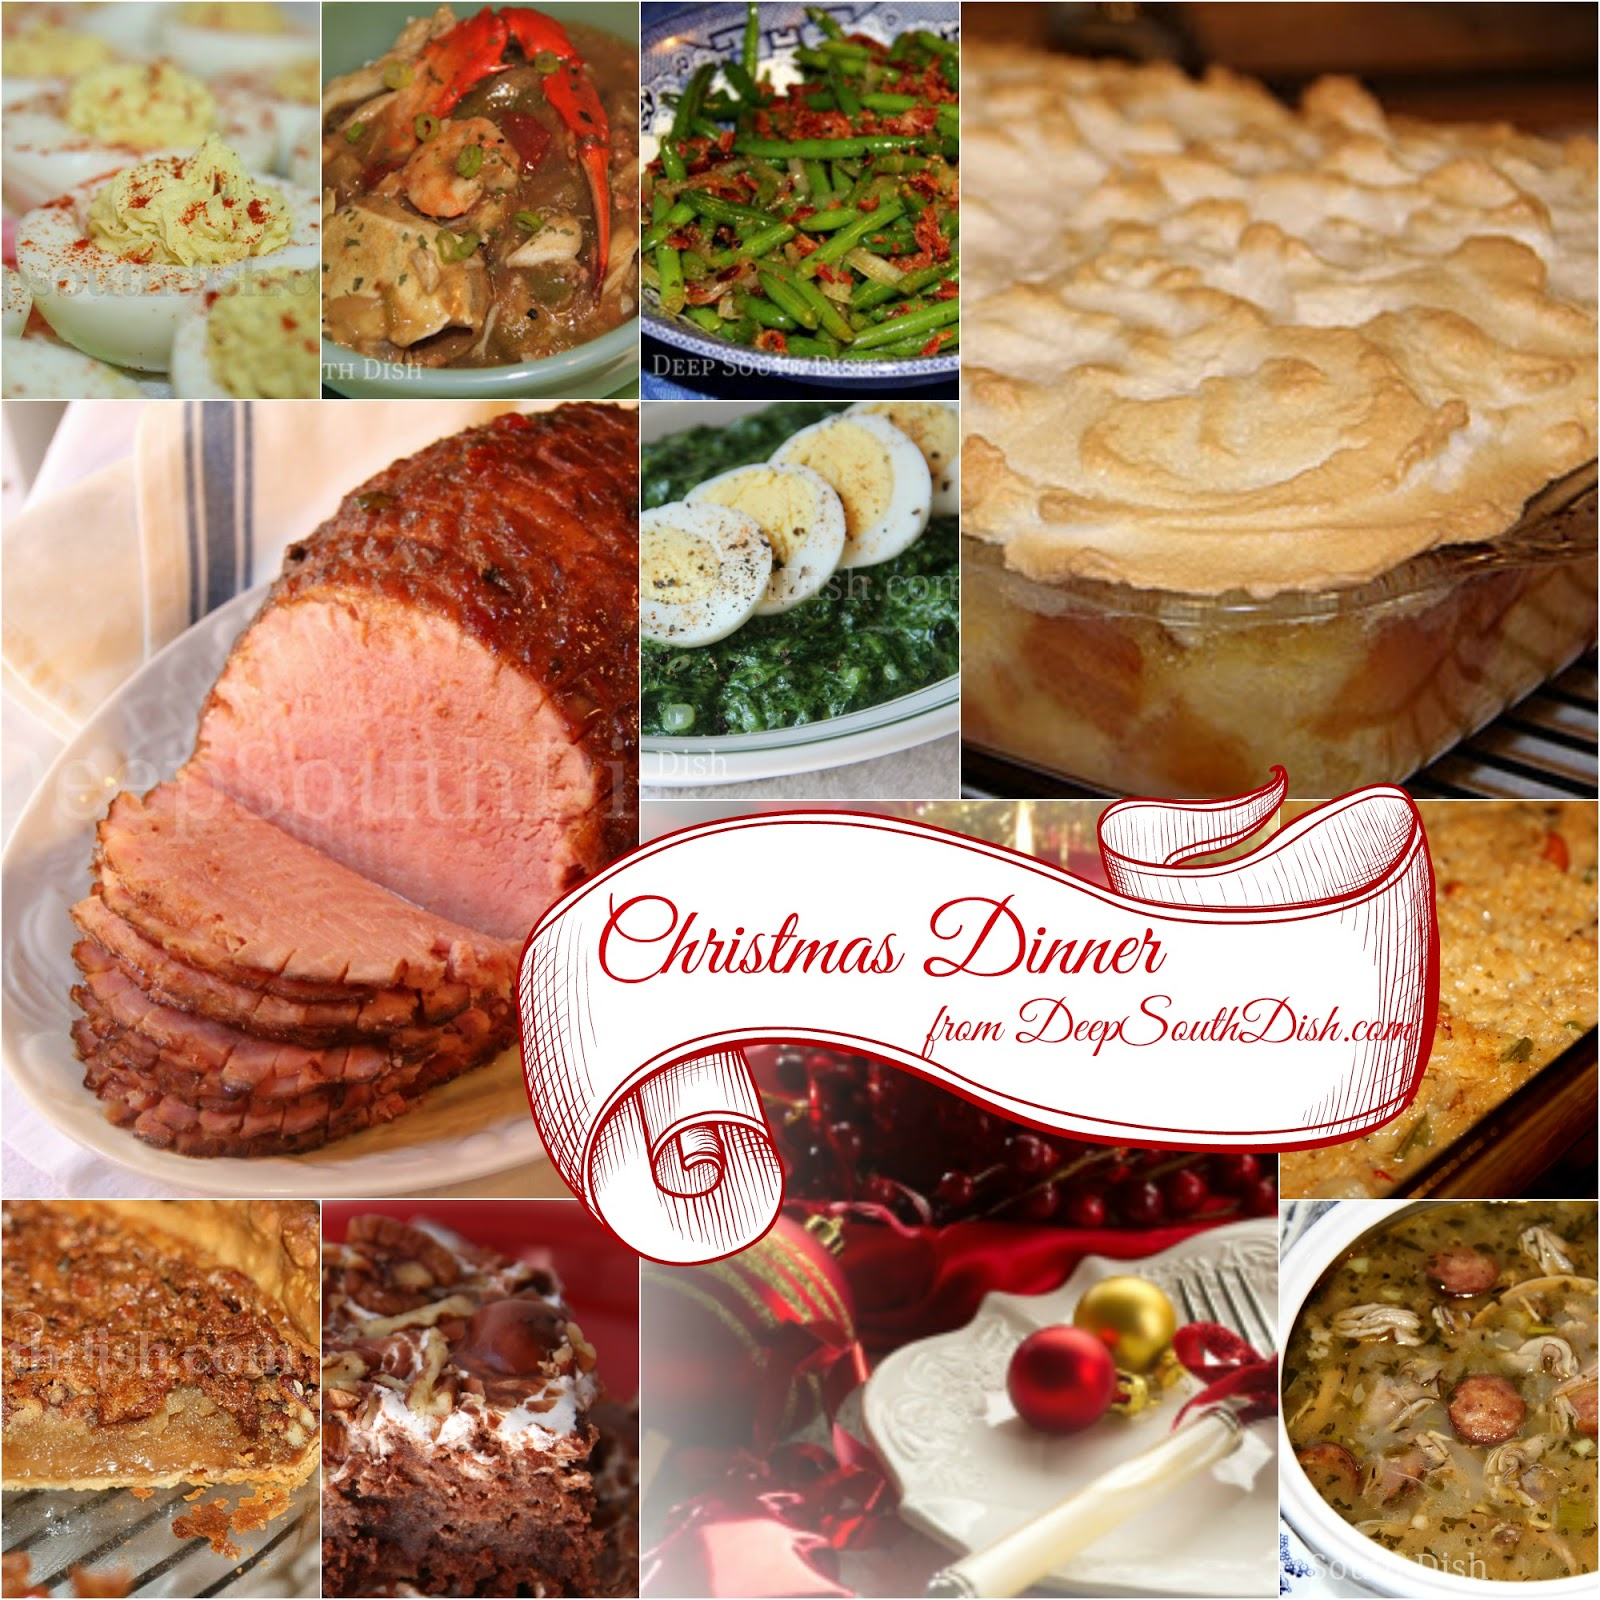 Deep south dish southern christmas dinner menu and recipe ideas southern christmas dinner menu and recipe ideas forumfinder